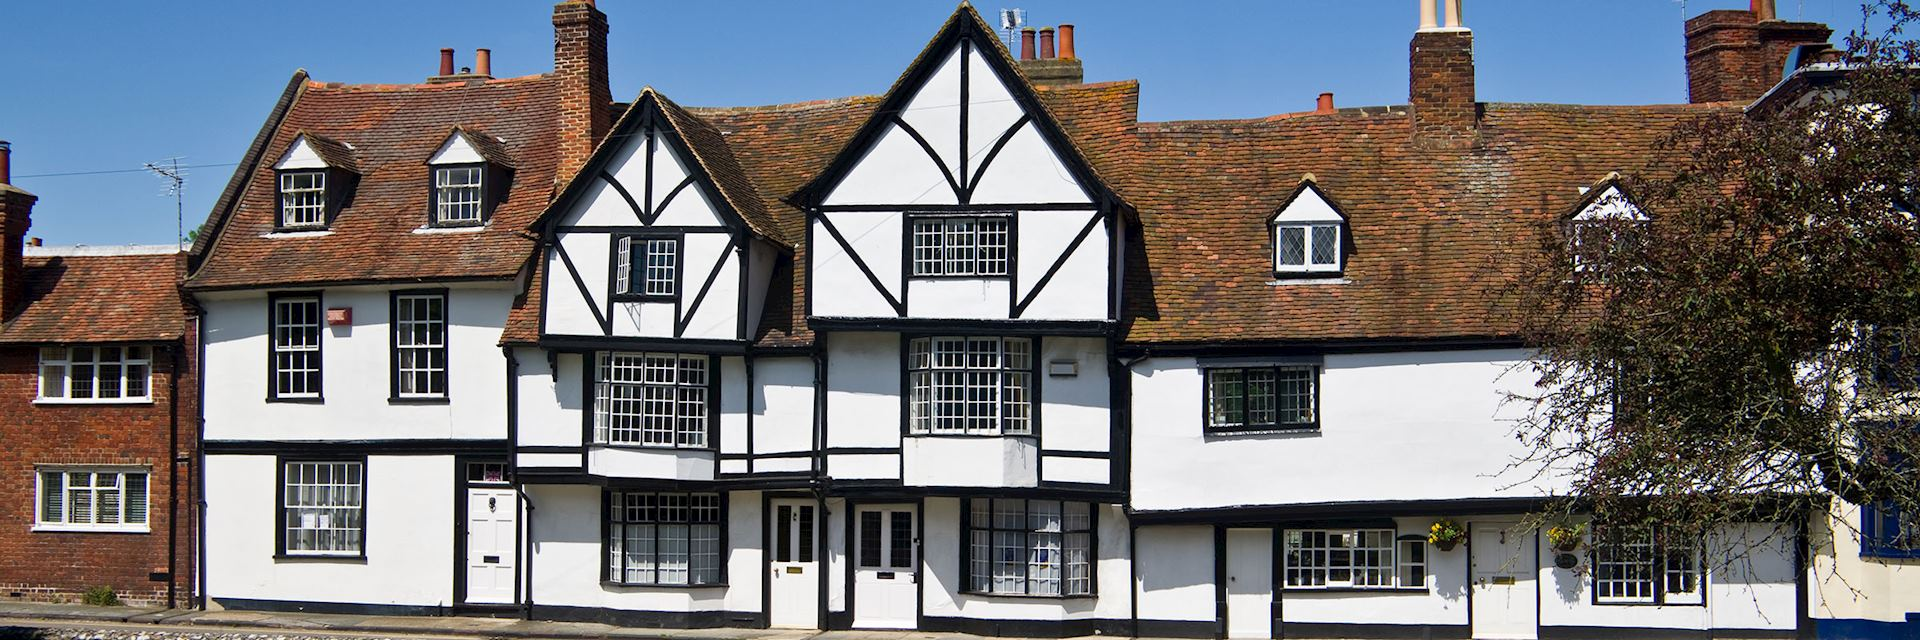 Medieval houses in Canterbury